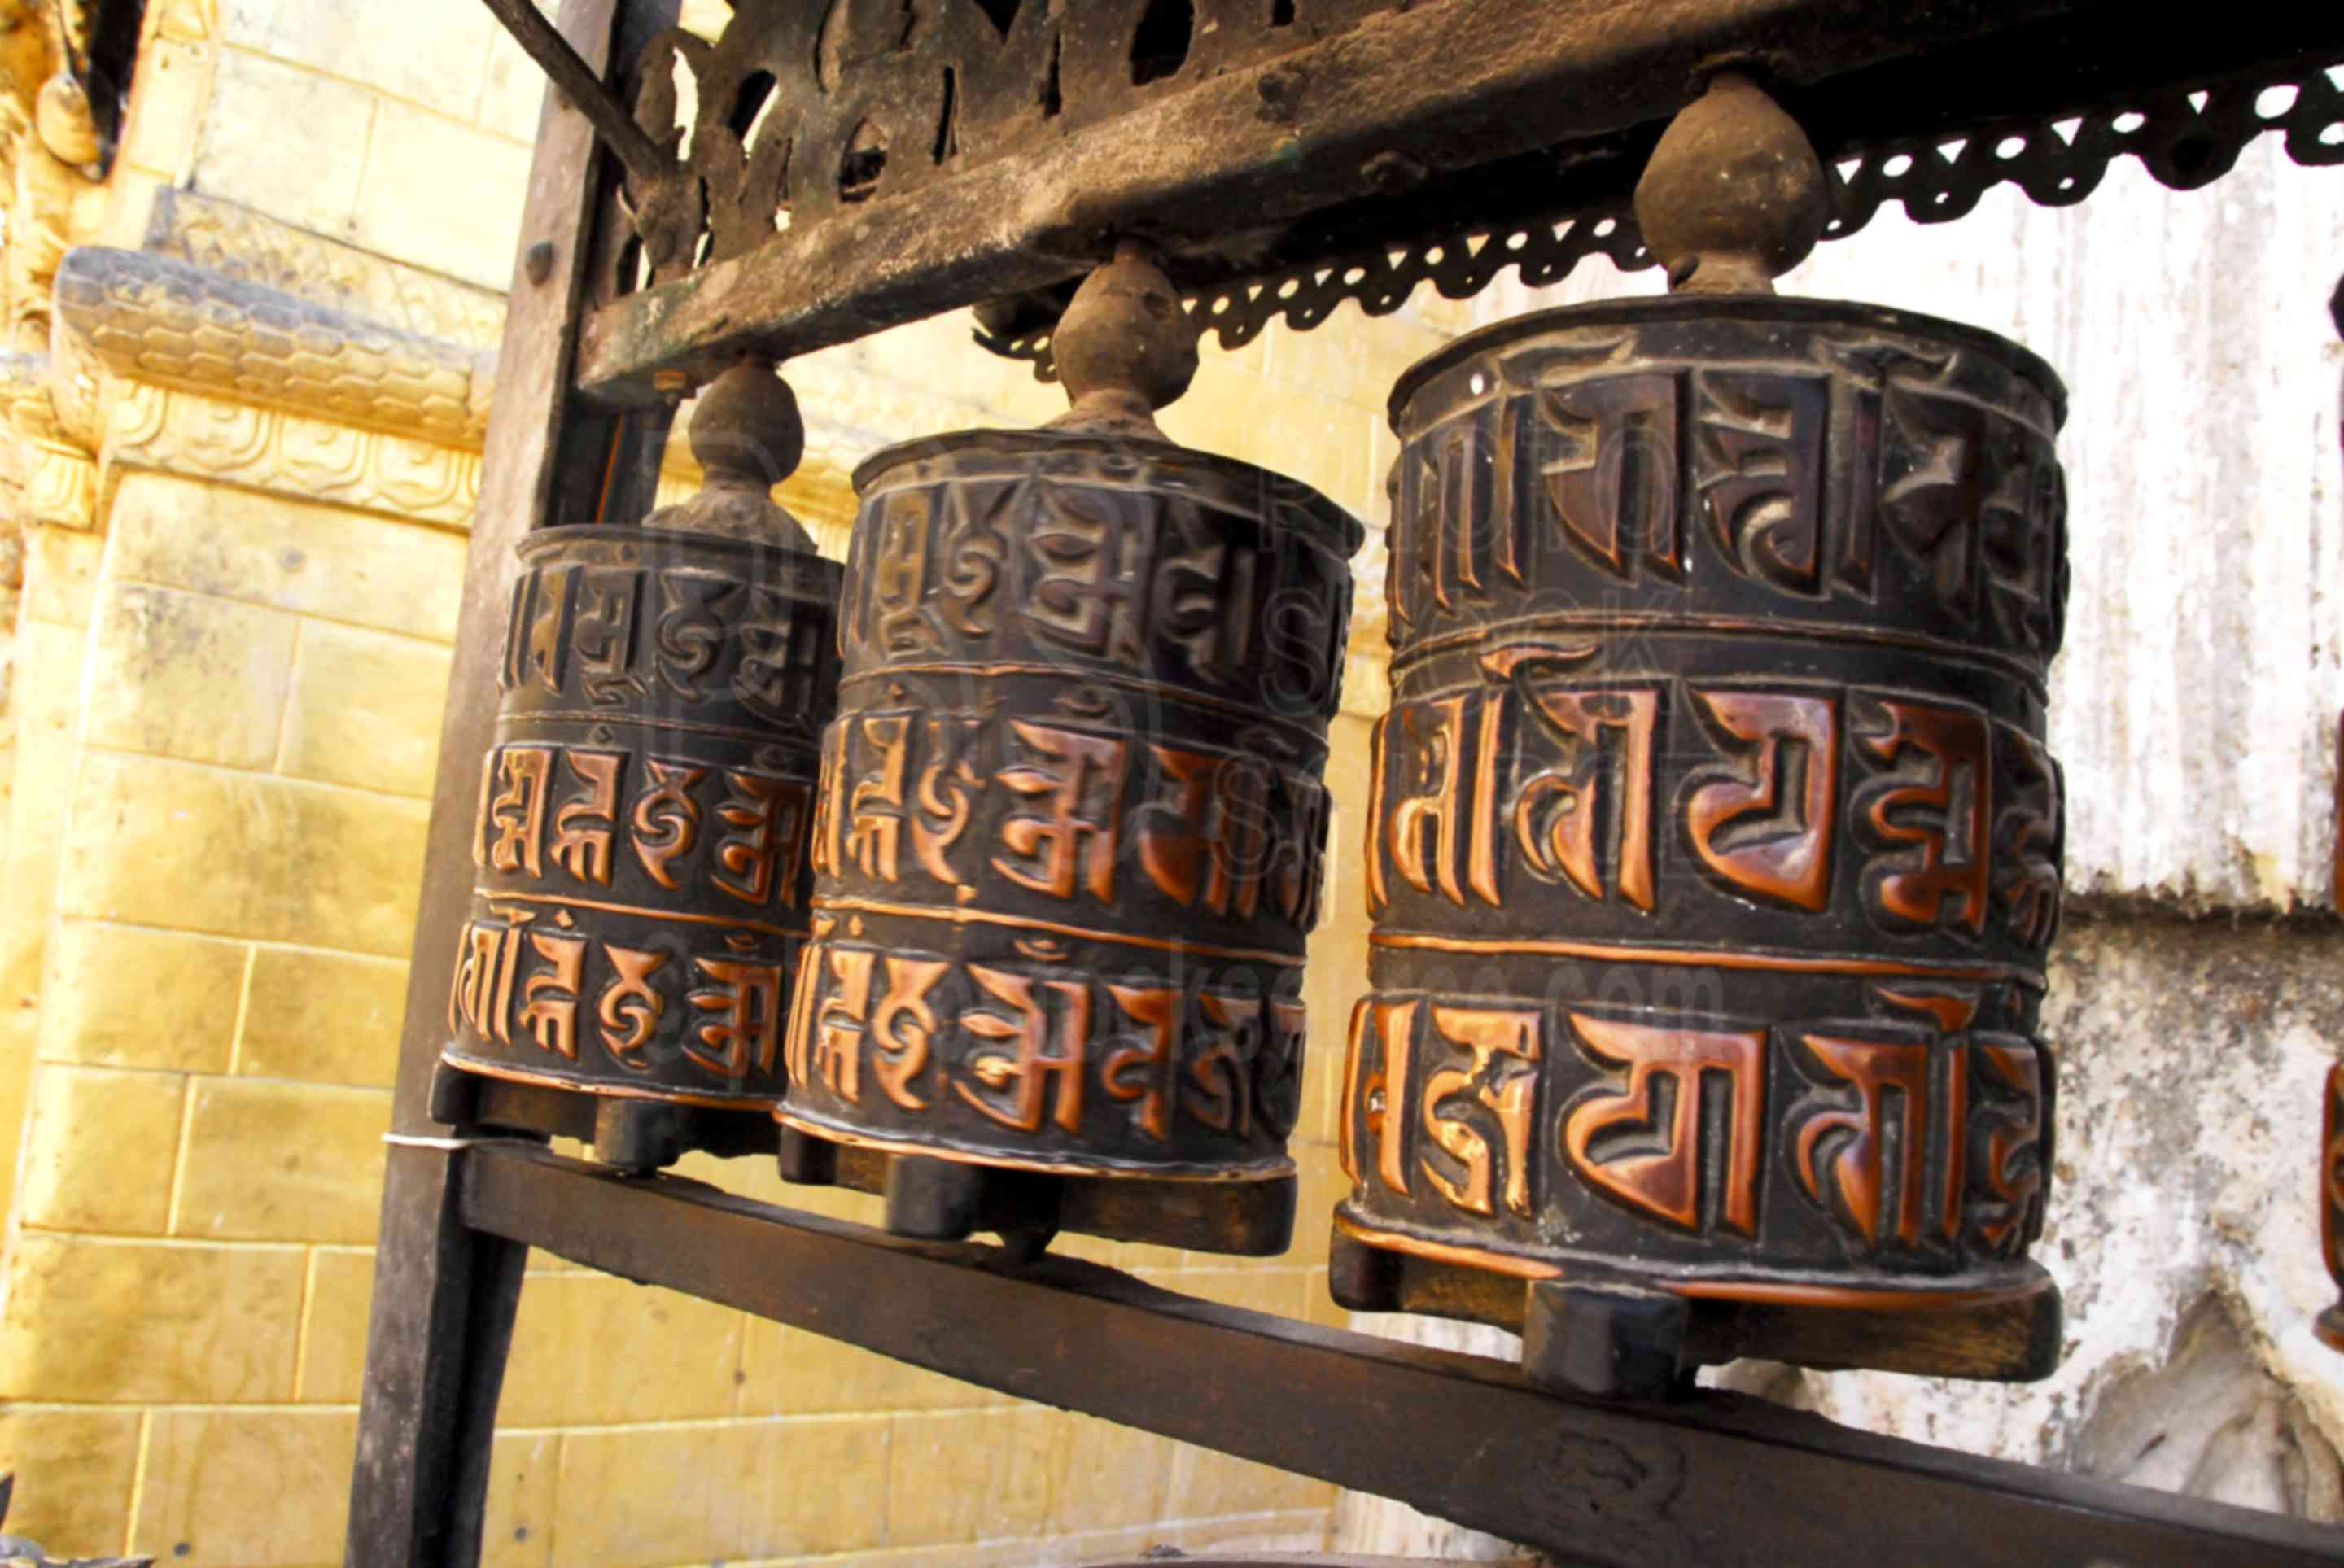 Prayer Wheels,shrine,temple,worship,buddhist,religious,monkey temple,prayer,wheel,architecture,temples